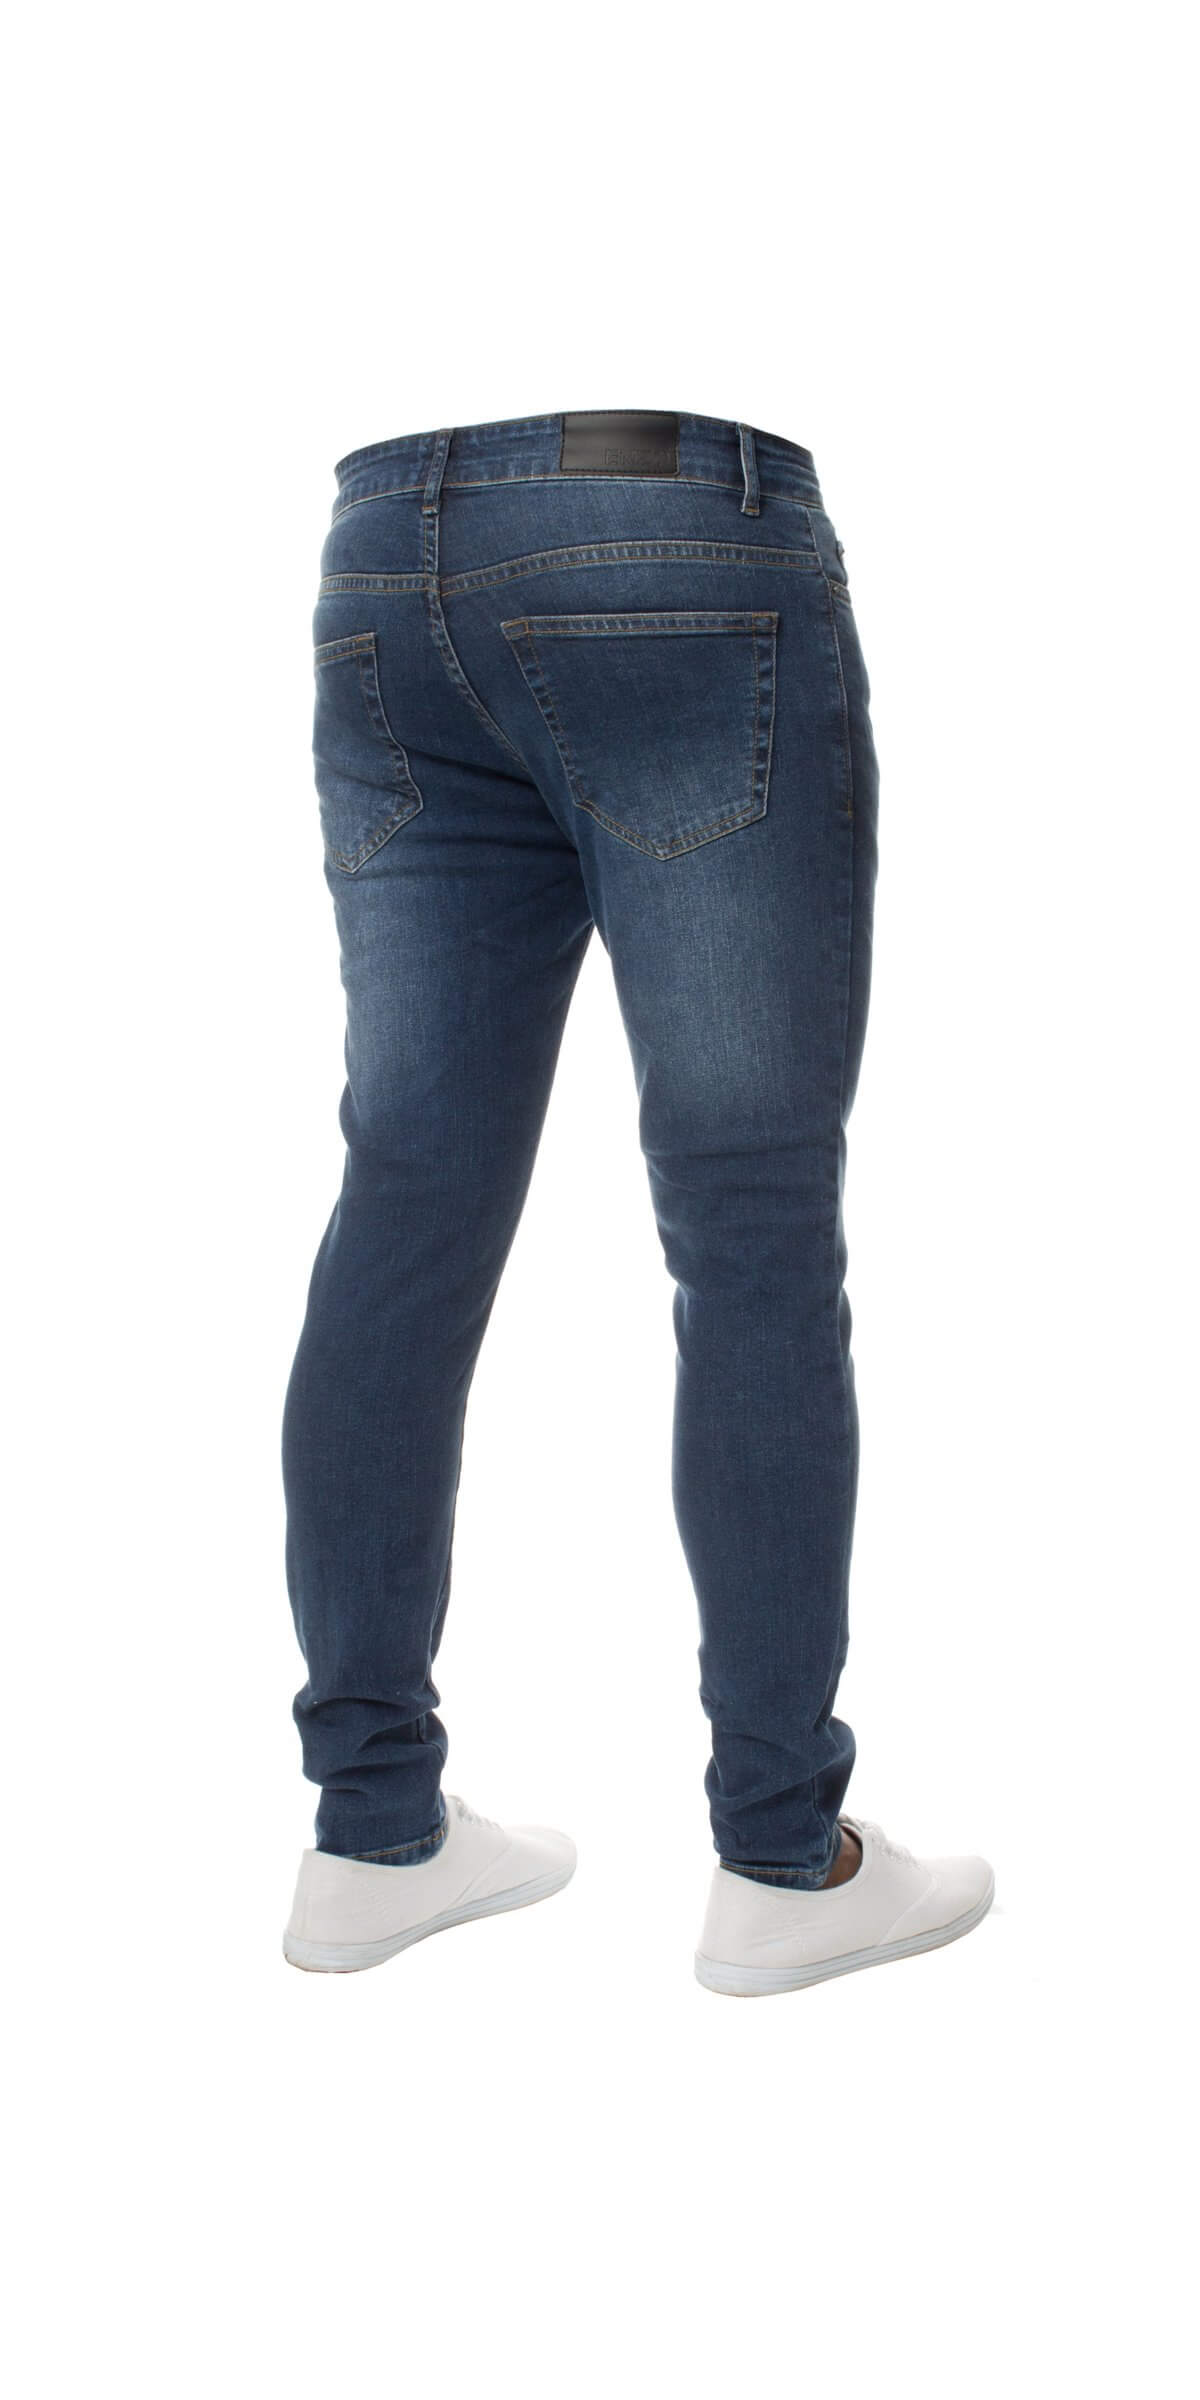 Designer Stretch Skinny Fit Denim Jeans | Kruze Designer Menswear